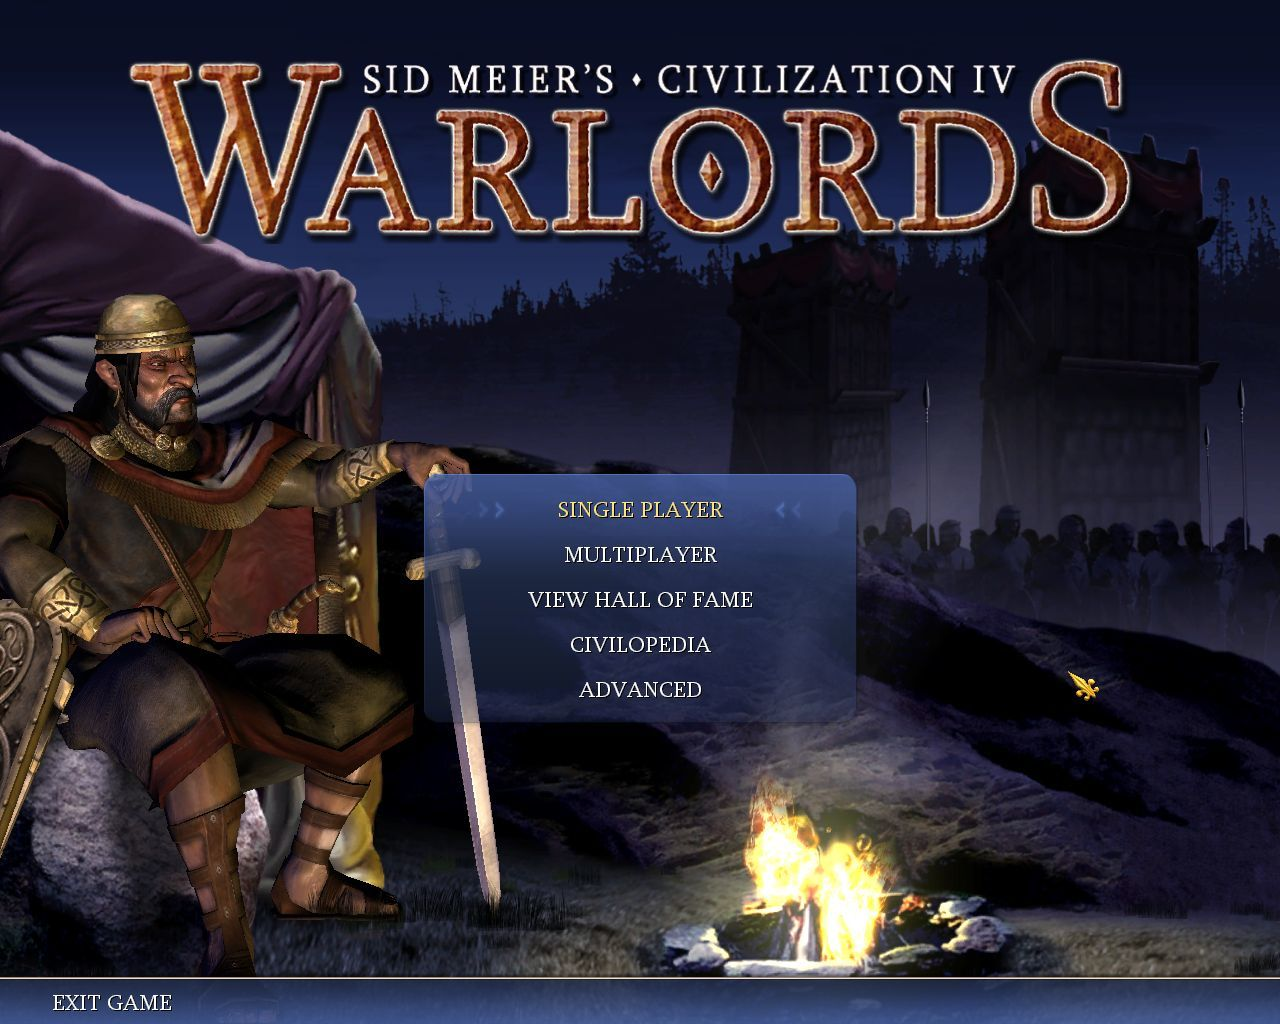 Sid Meier's Civilization IV: Warlords Windows New main menu